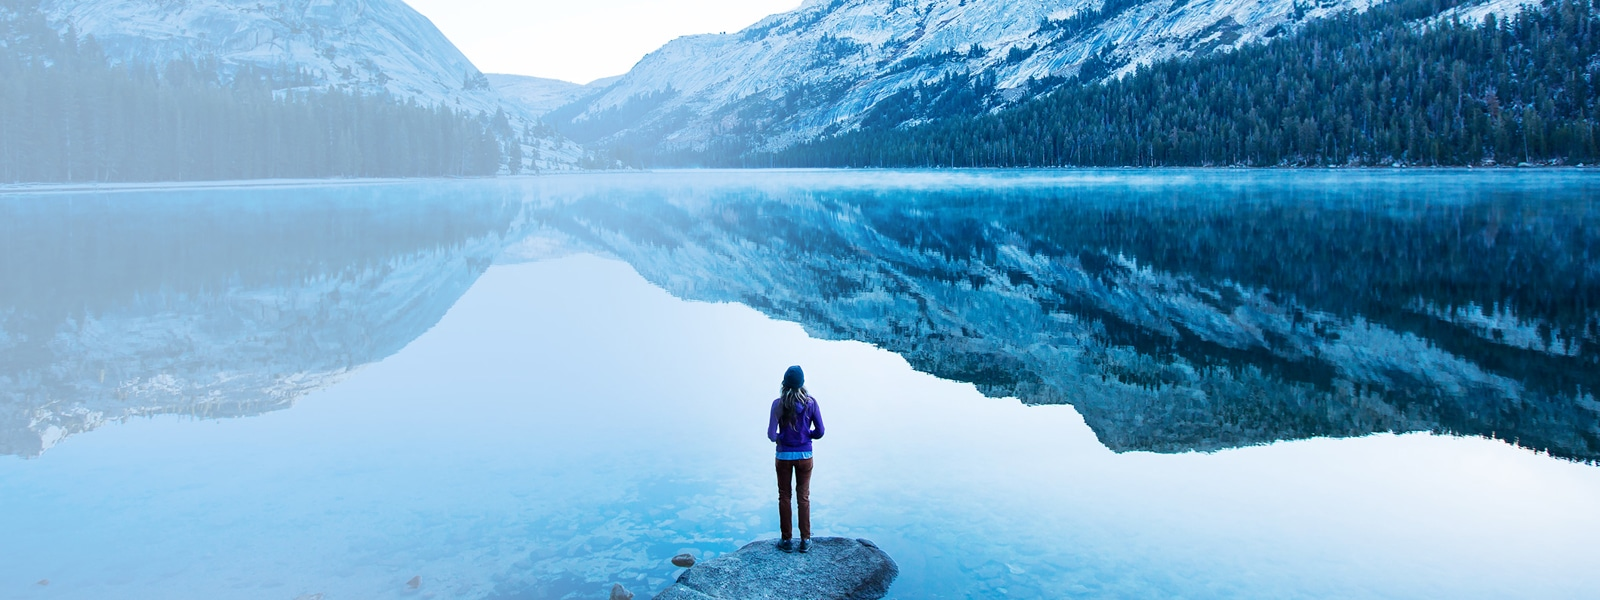 Woman stands on the shore of a lake surrounded by snowy mountains